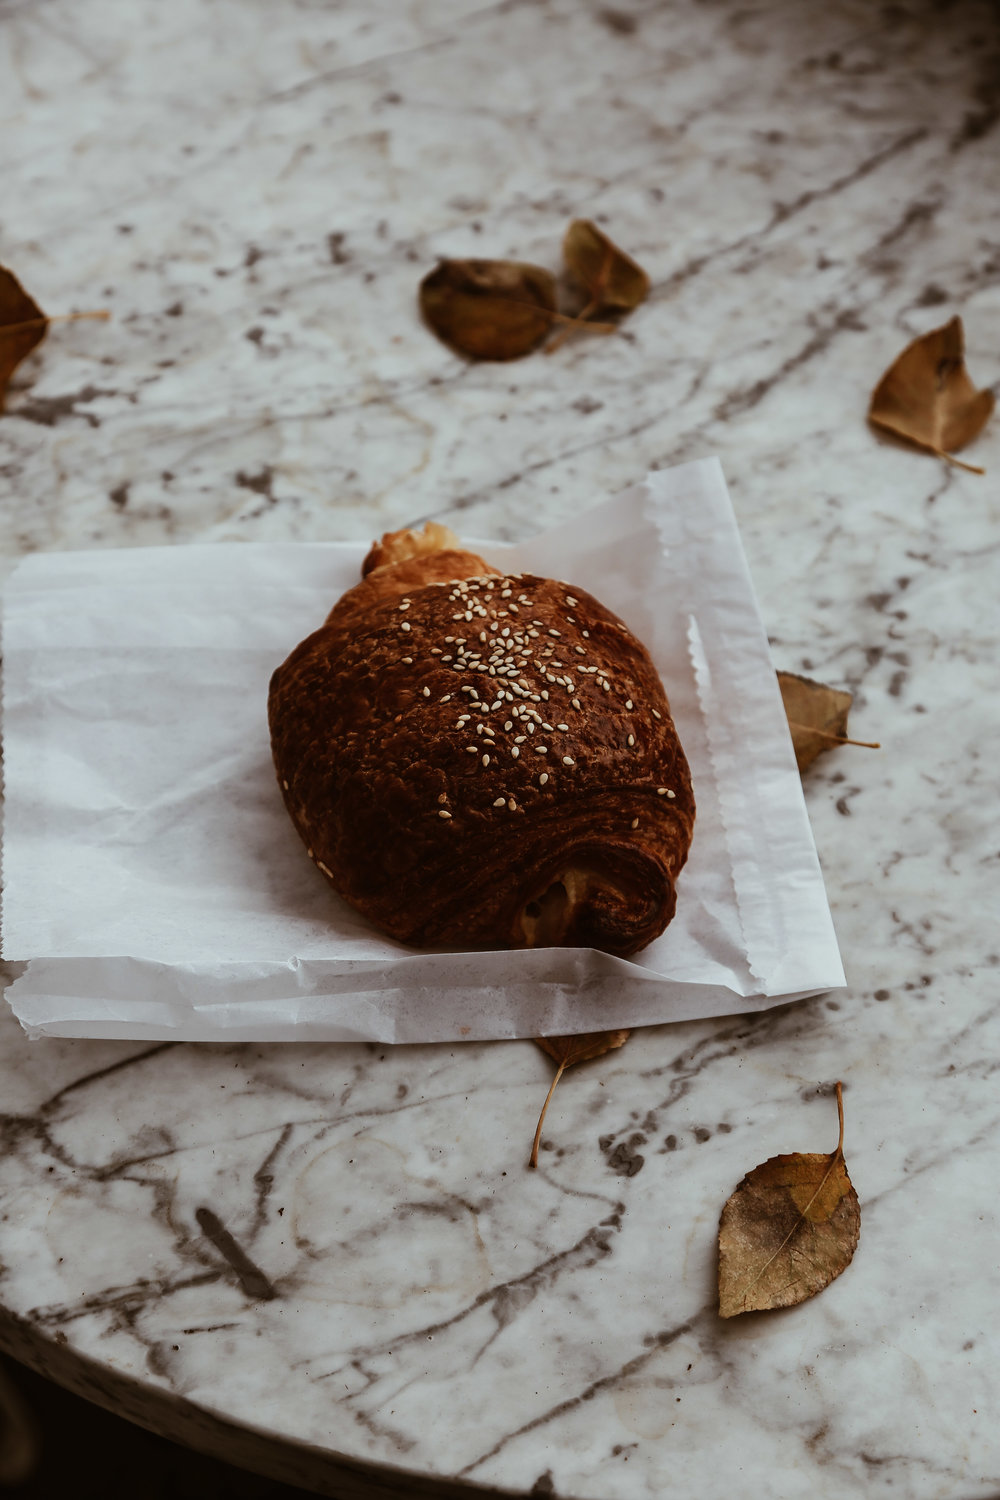 The Ham + cheese croissant from Persephone Bakery